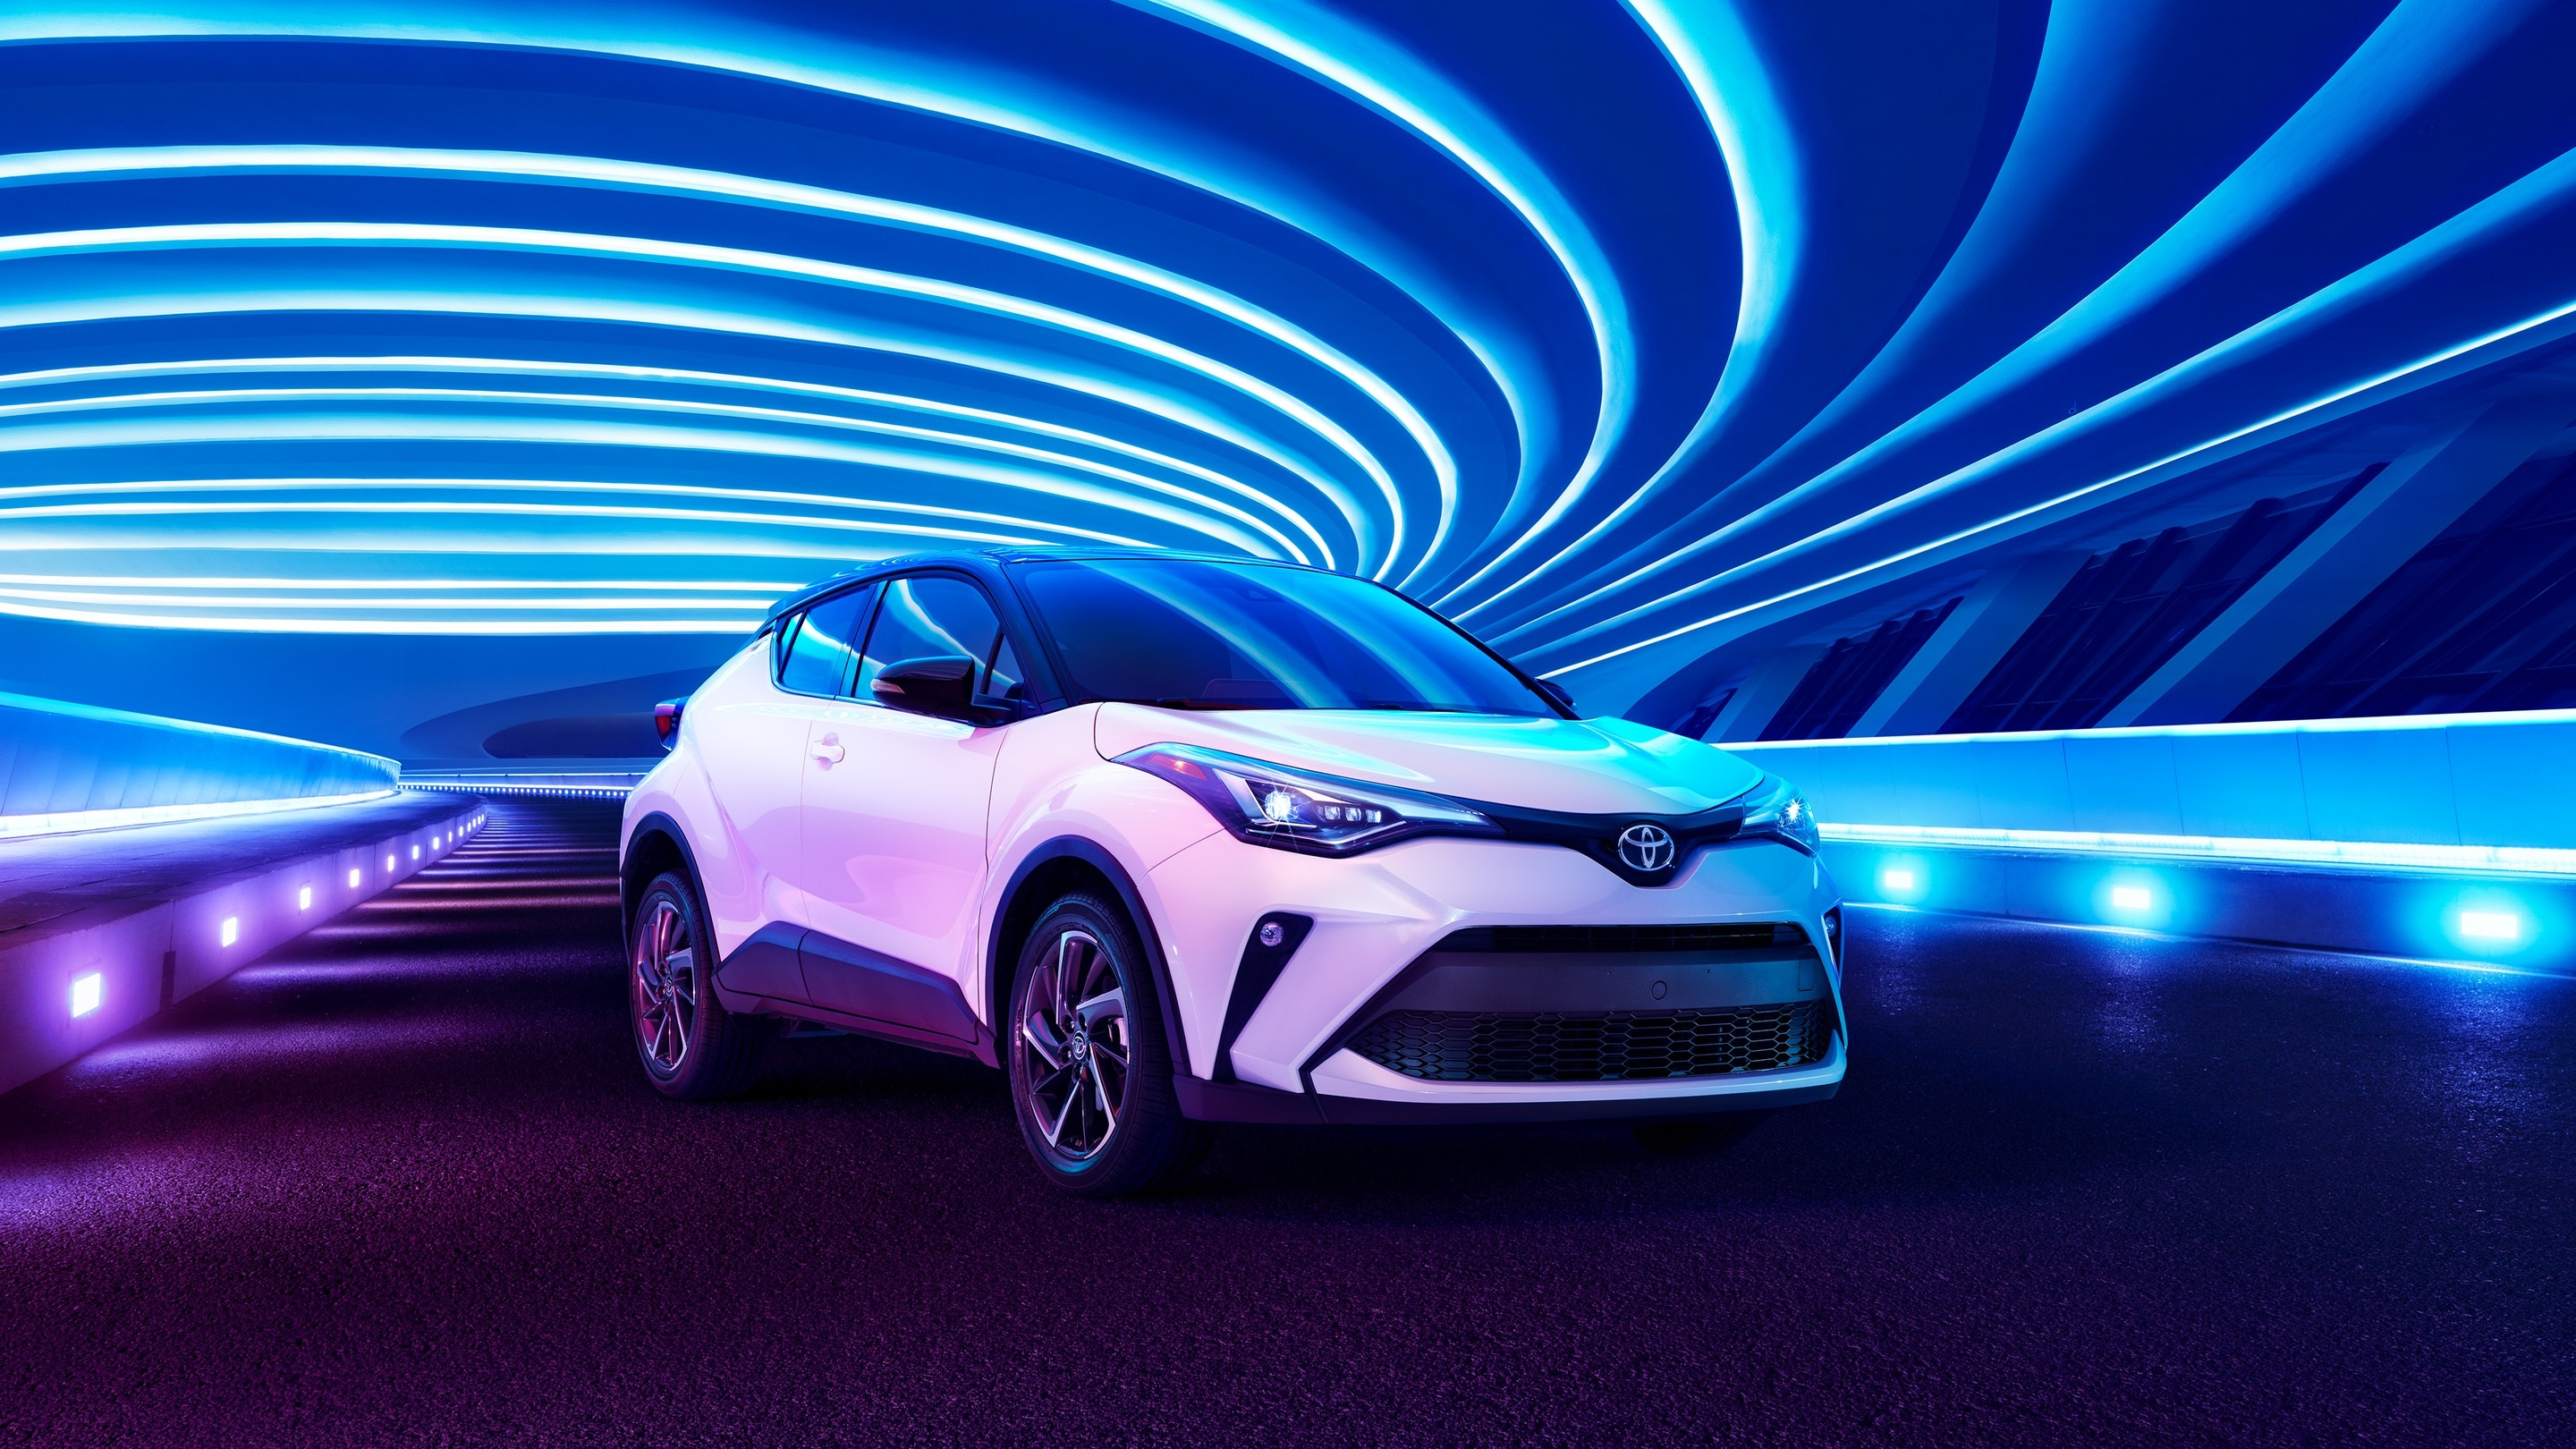 2020 Toyota C-HR with funky background